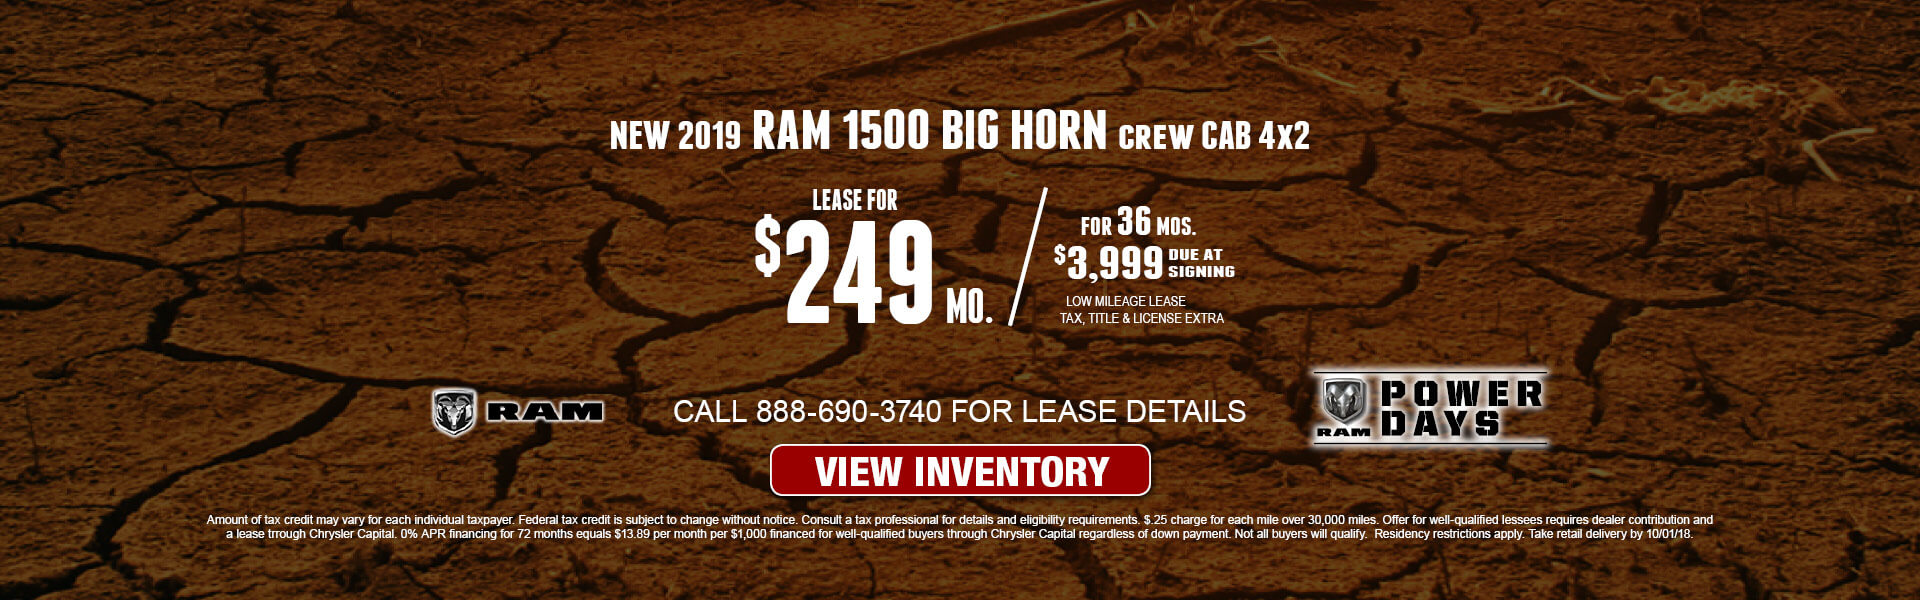 Ram 1500 Express $249 Lease